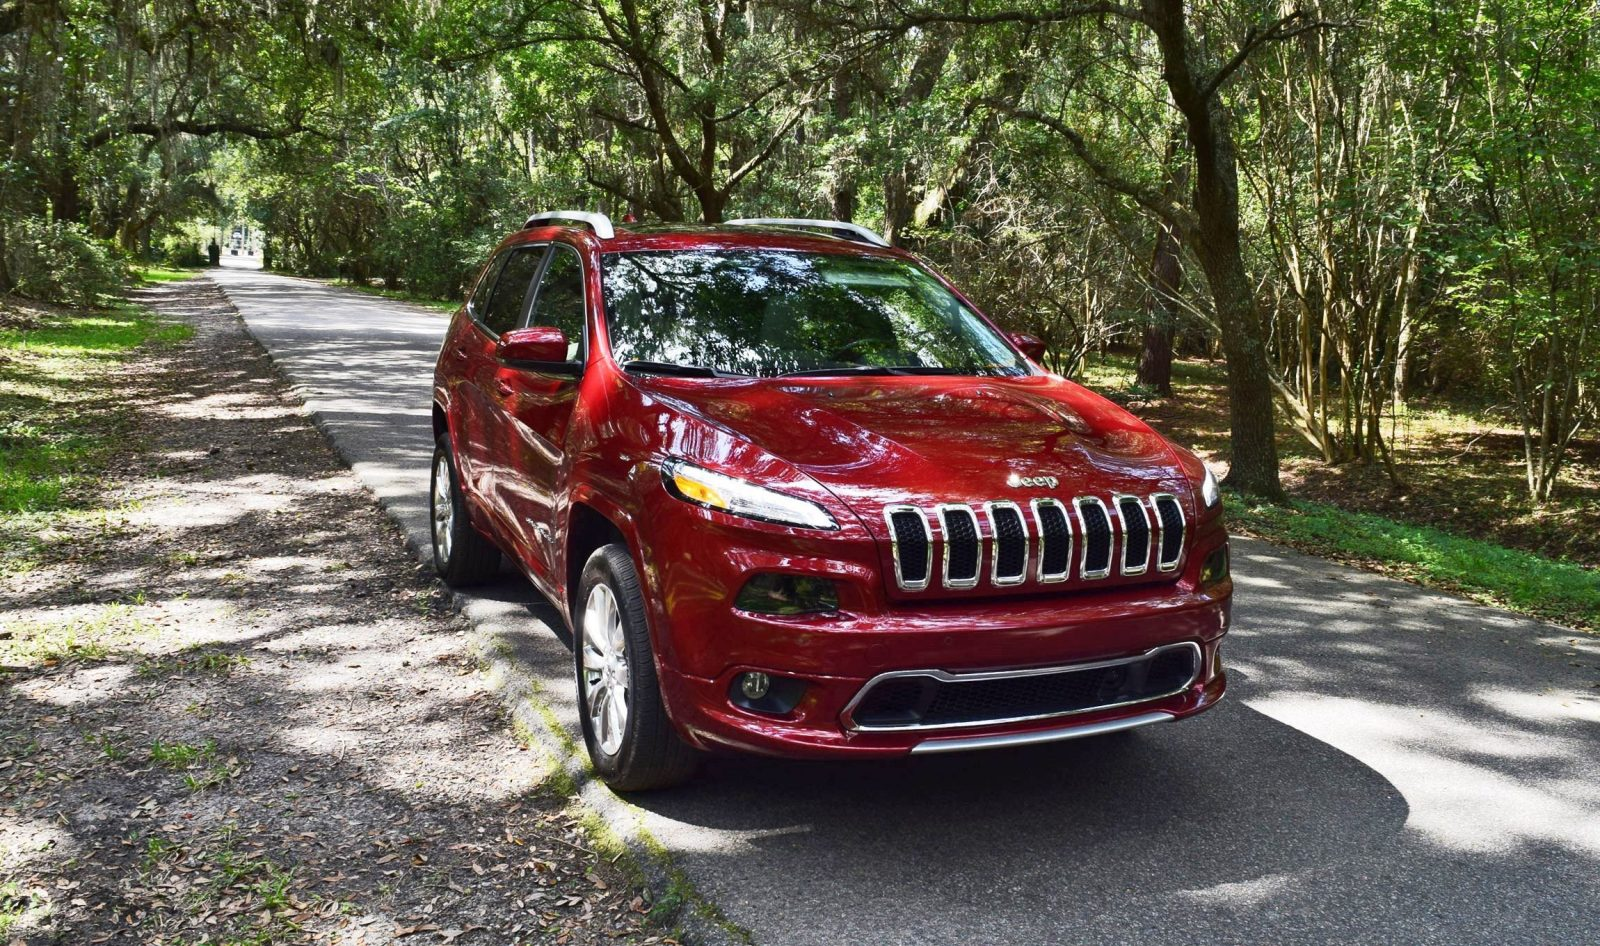 Jeep Cherokee Overland X X on 2015 Jeep Cherokee Trailhawk 4x4